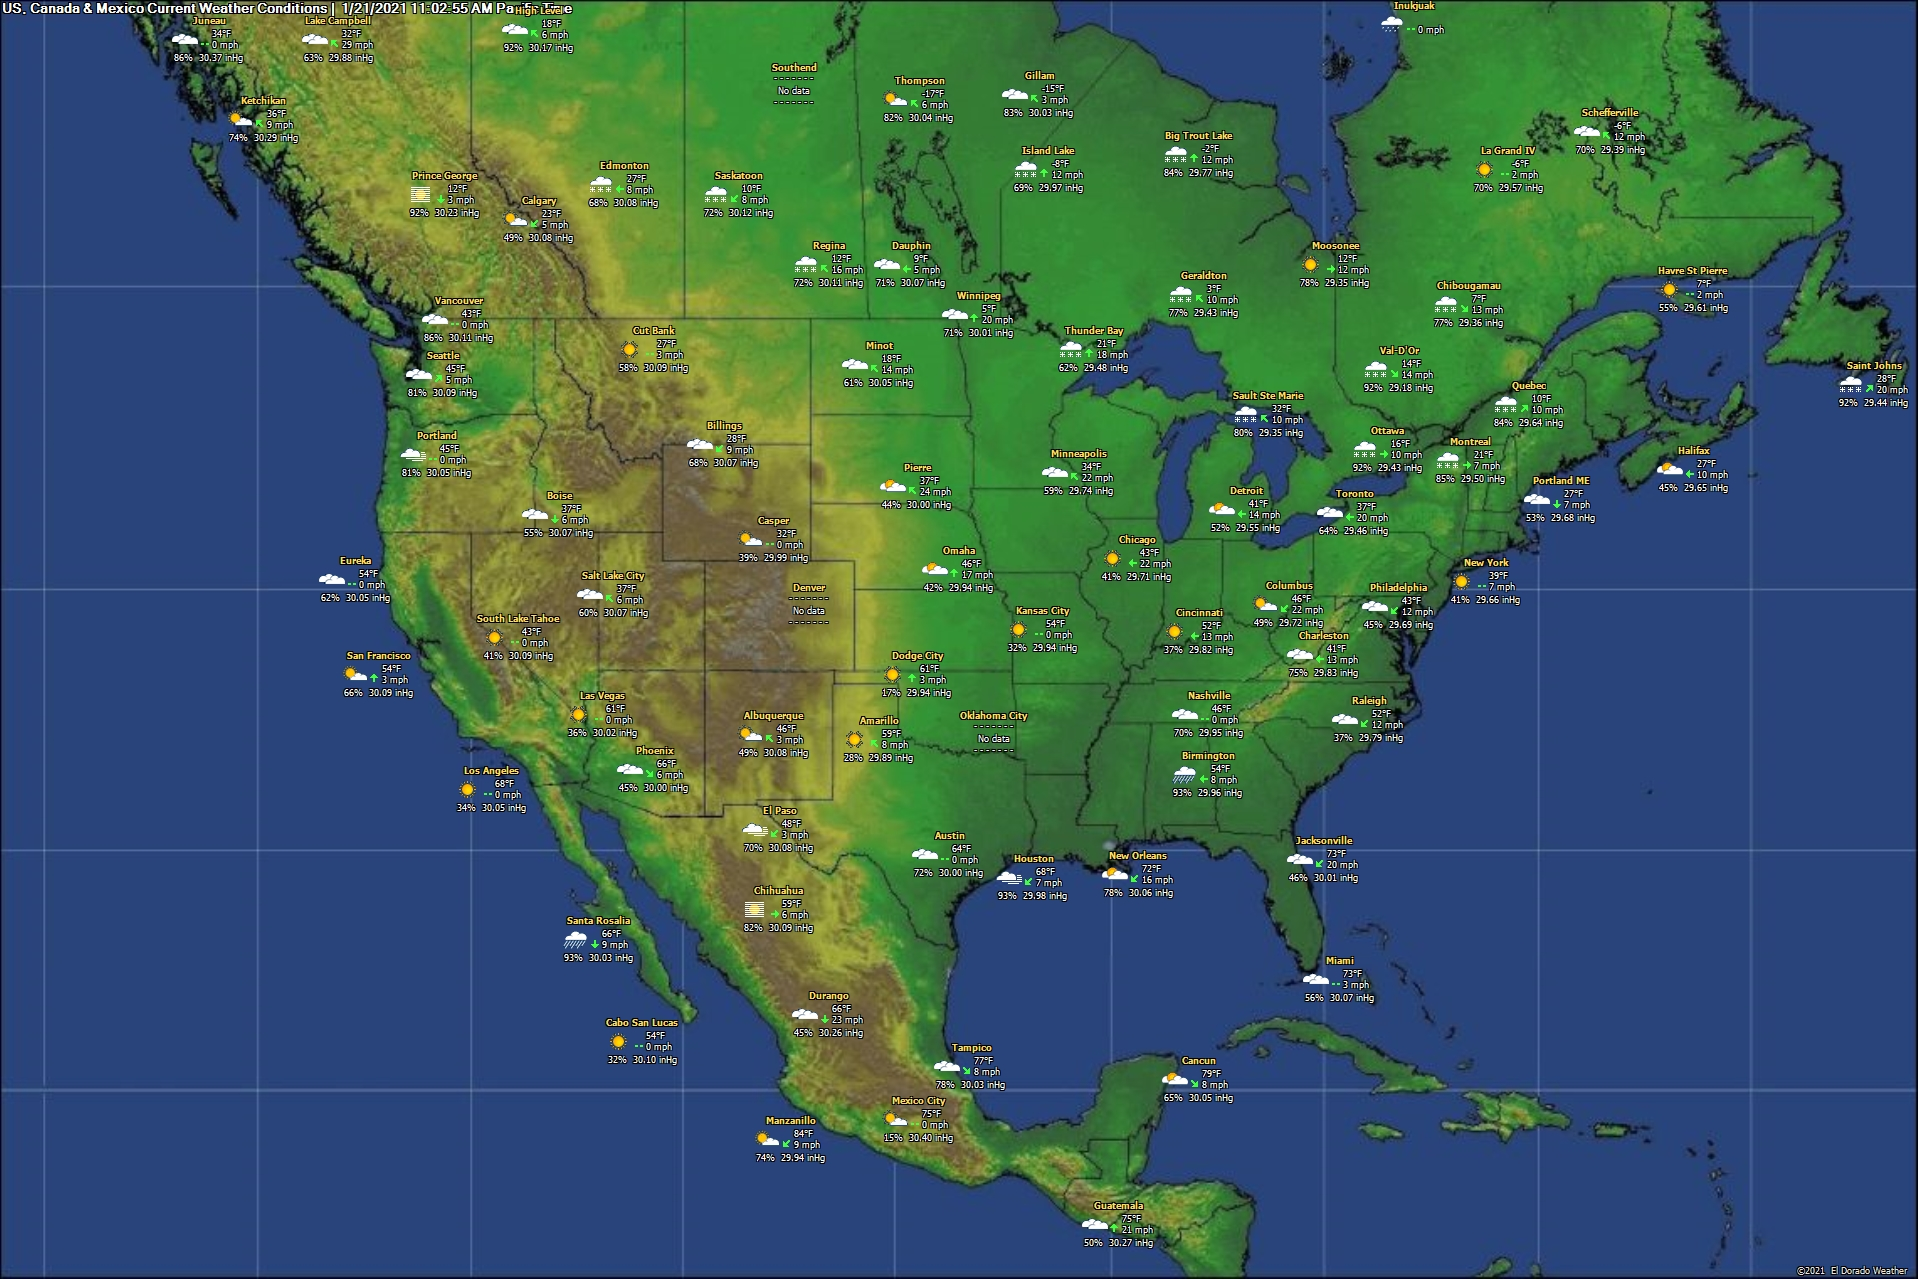 United States Canada Mexico Current Weather Conditions - Current weather map eastern us